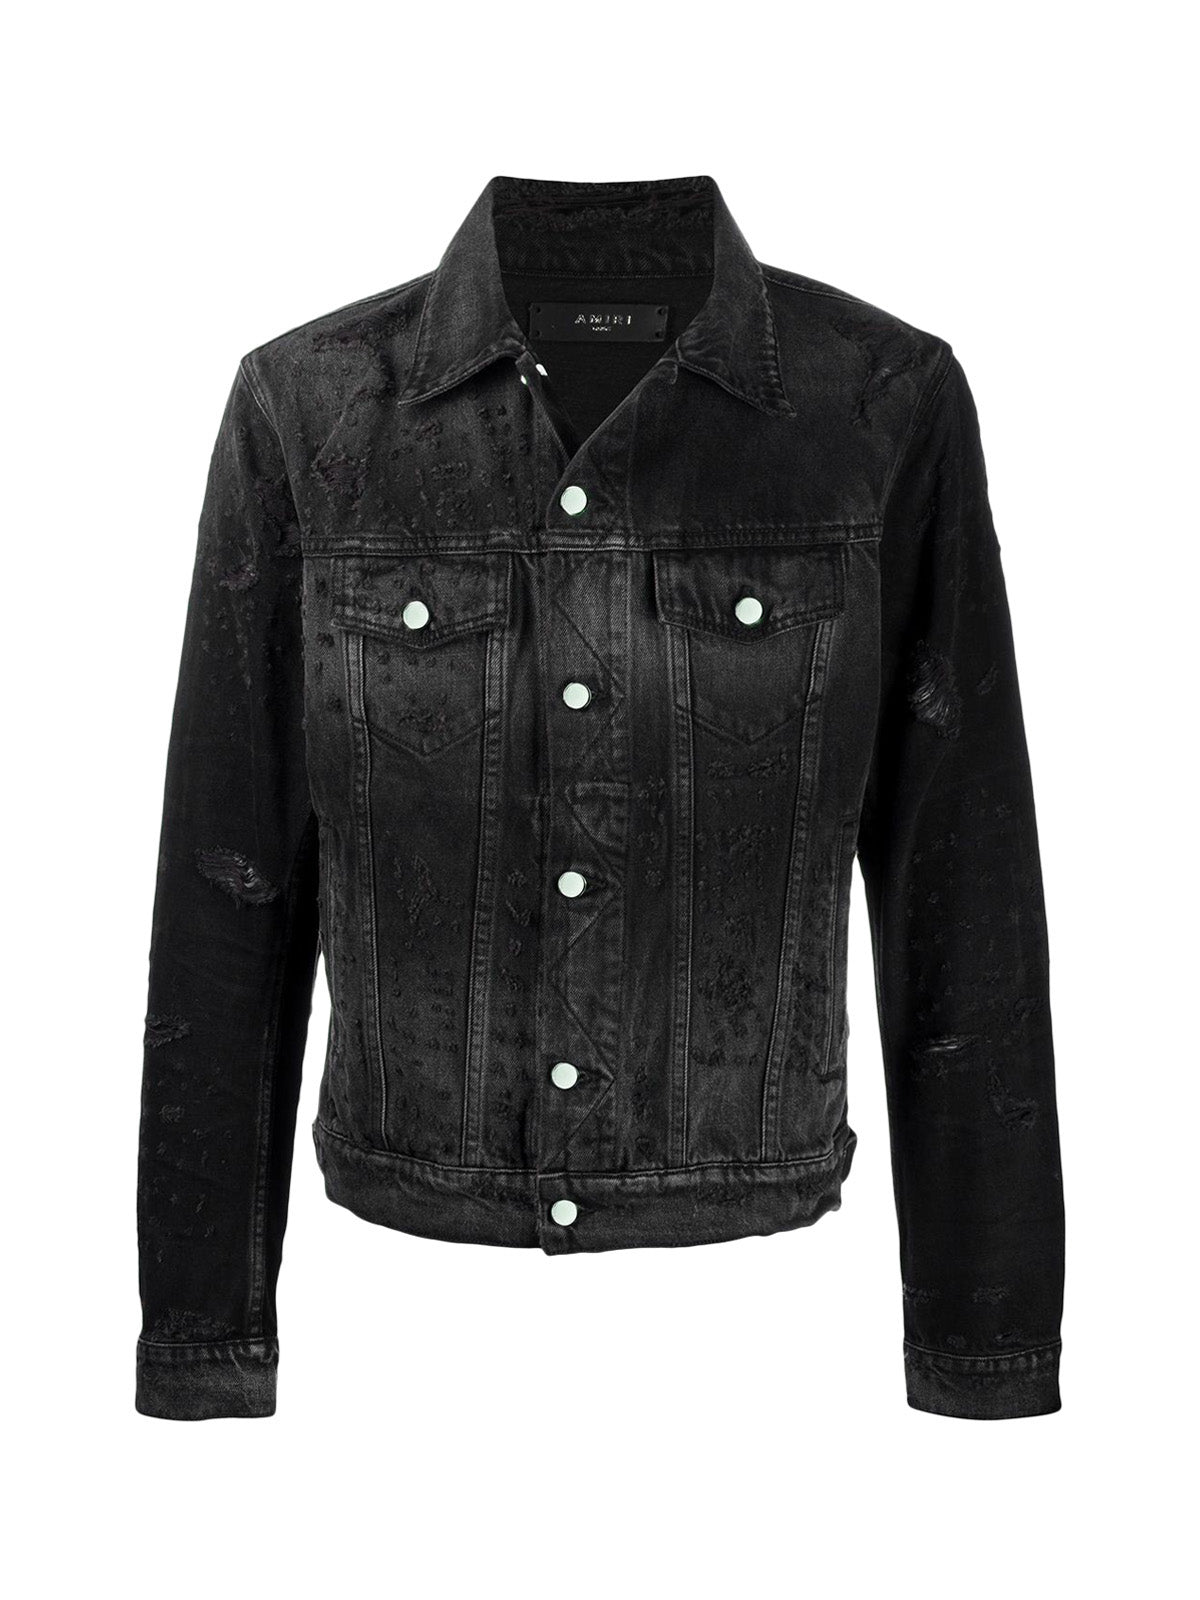 distressed effect denim jacket